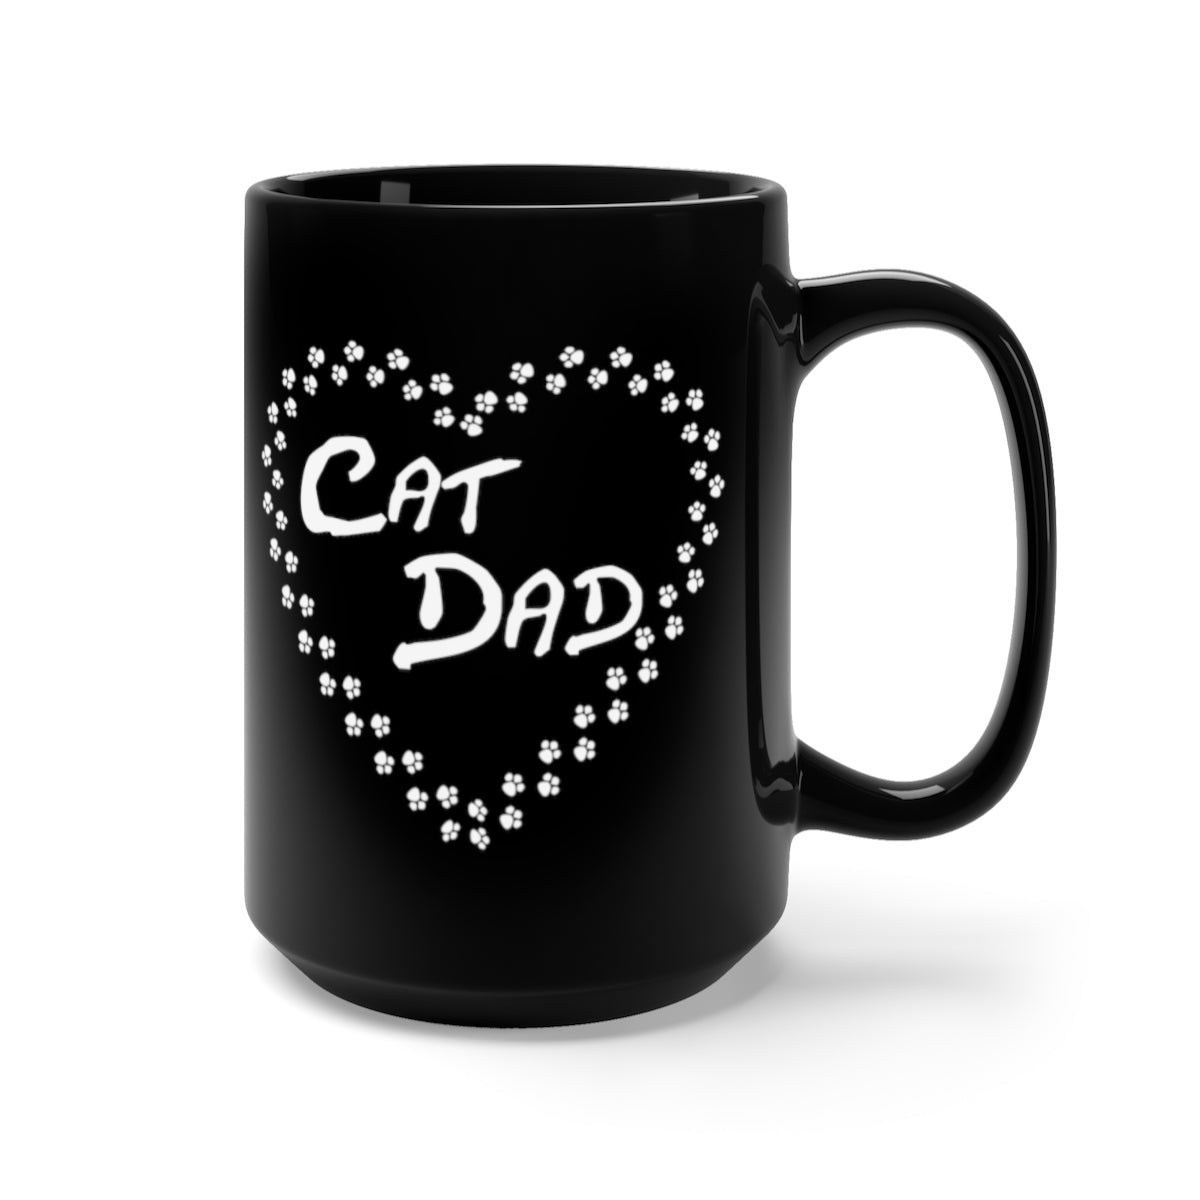 black mug with cat dad white text surrounded by a heart made of cat paws